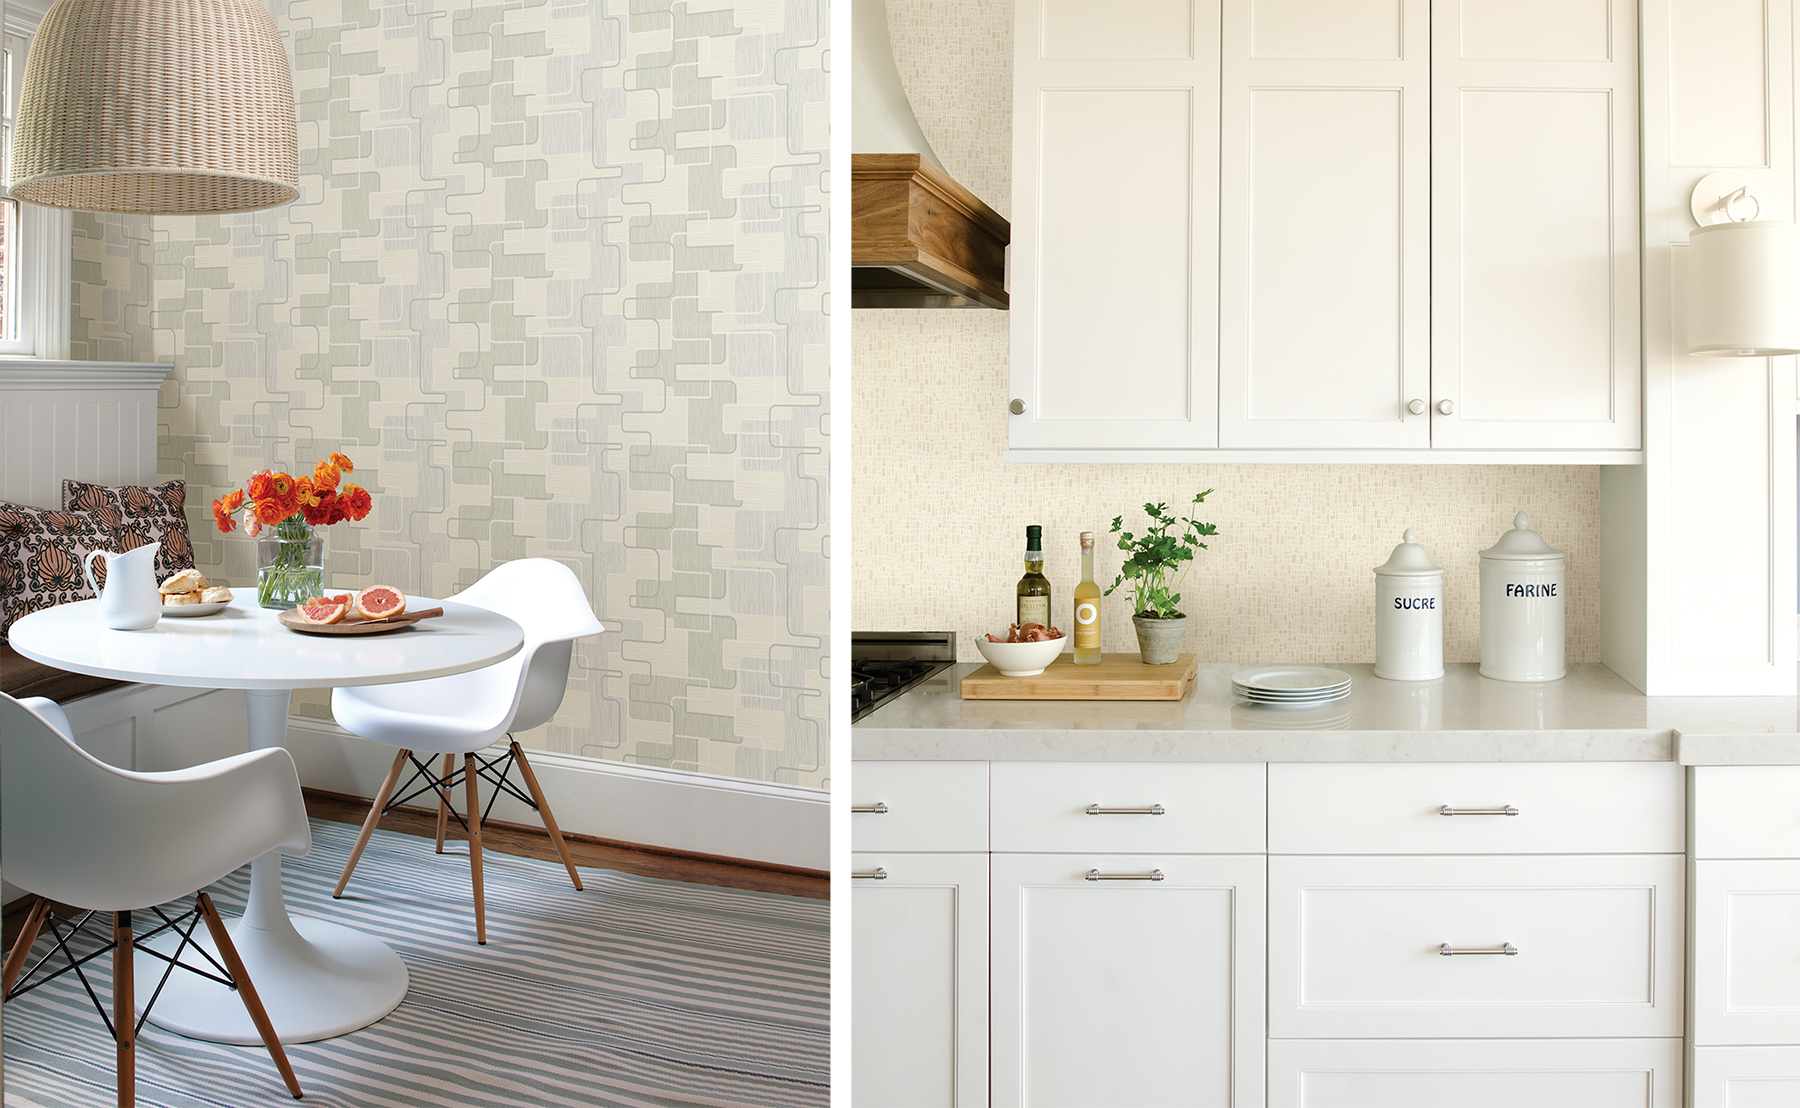 wallpaper for kitchen walls pantry shelves bed and bath iv  brewster home